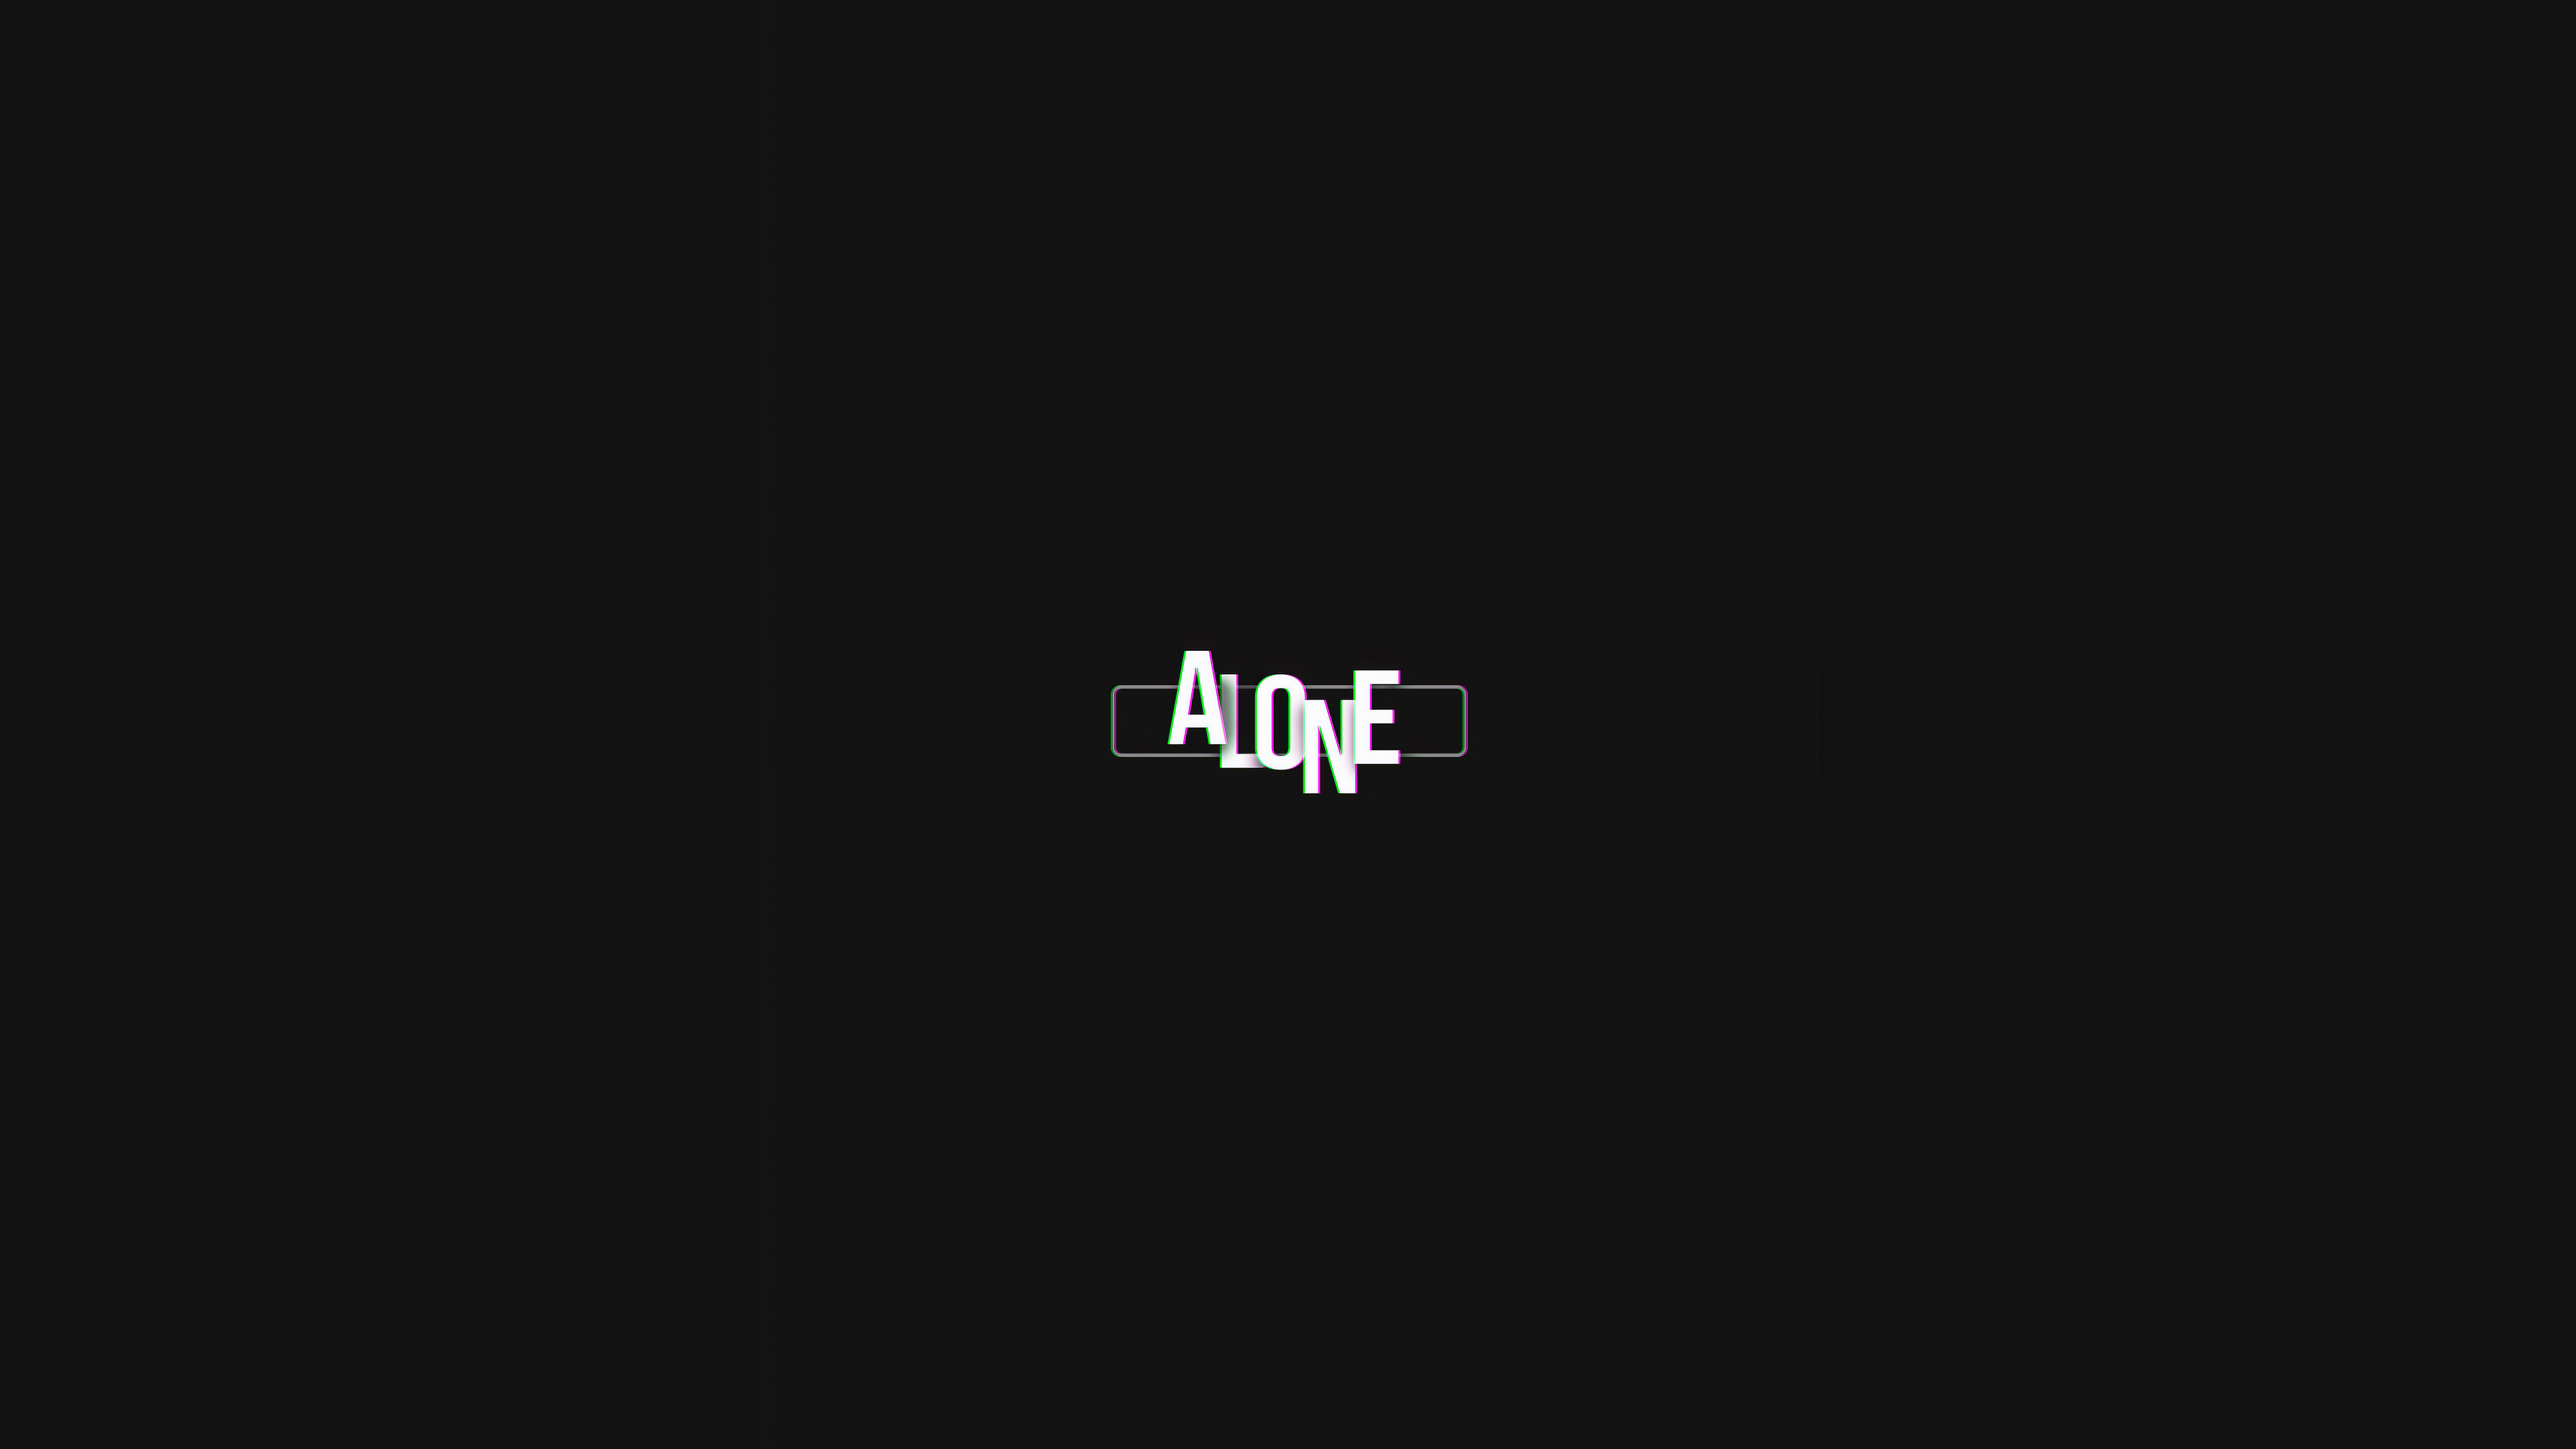 1440x2960 Alone Simple Typography 4k Samsung Galaxy Note 98